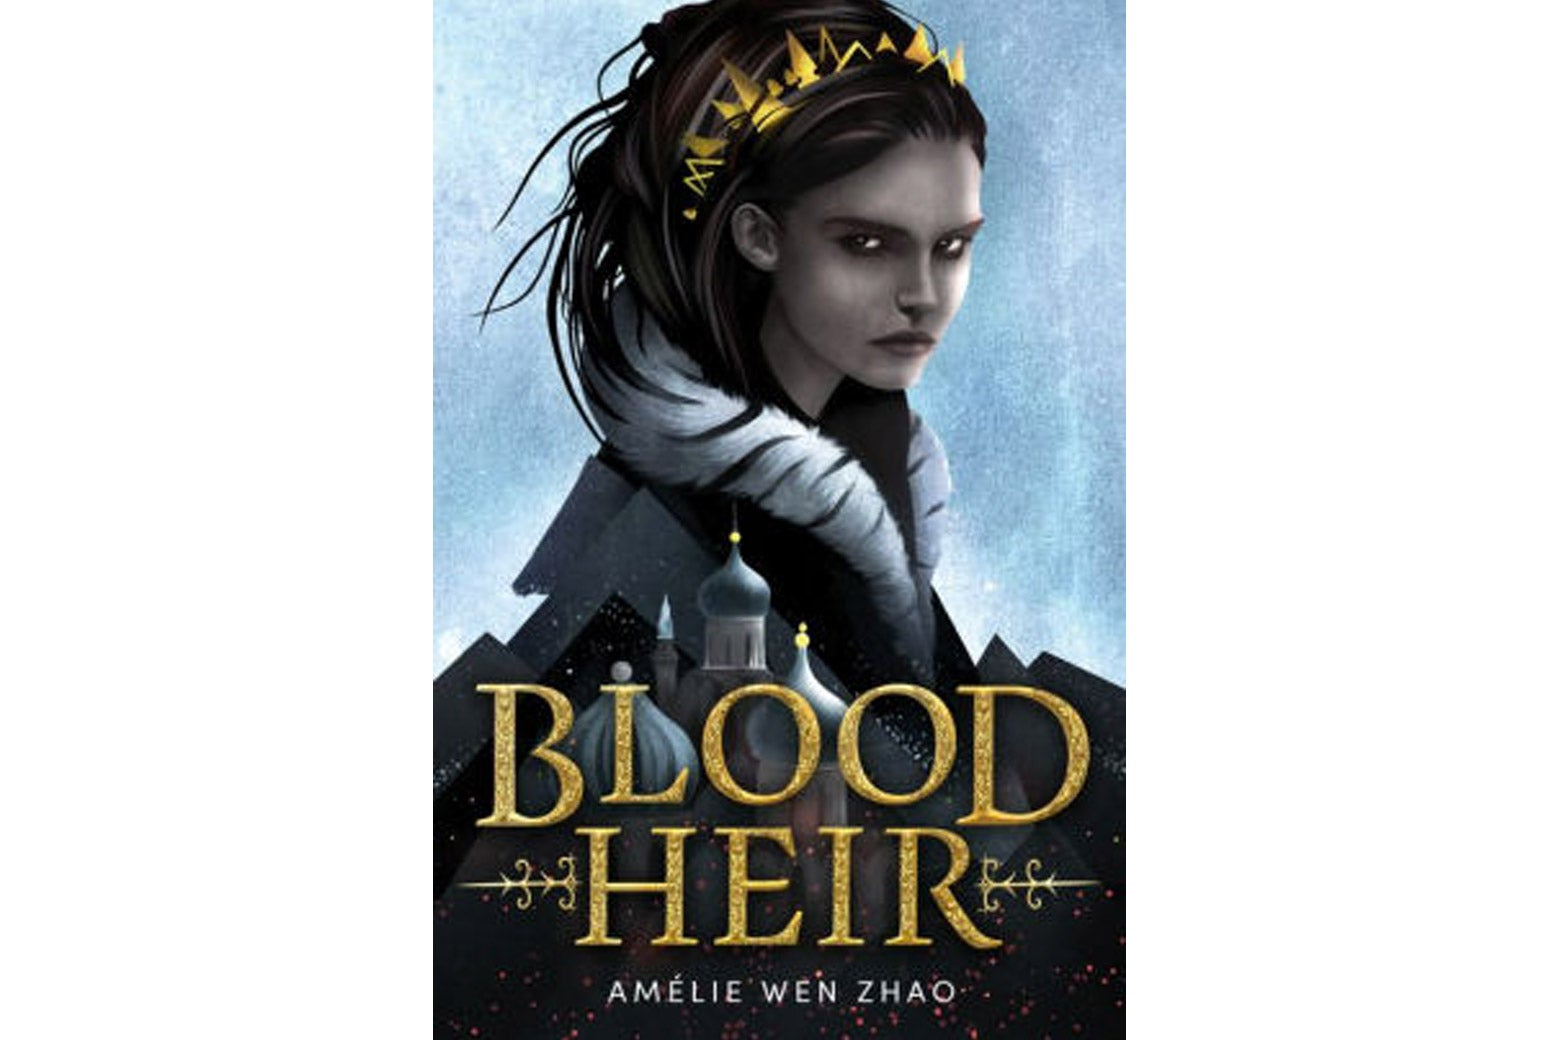 The cover of the book, Blood Heir, featuring an illustration of a dark-haired, light-skinned woman in a crown.